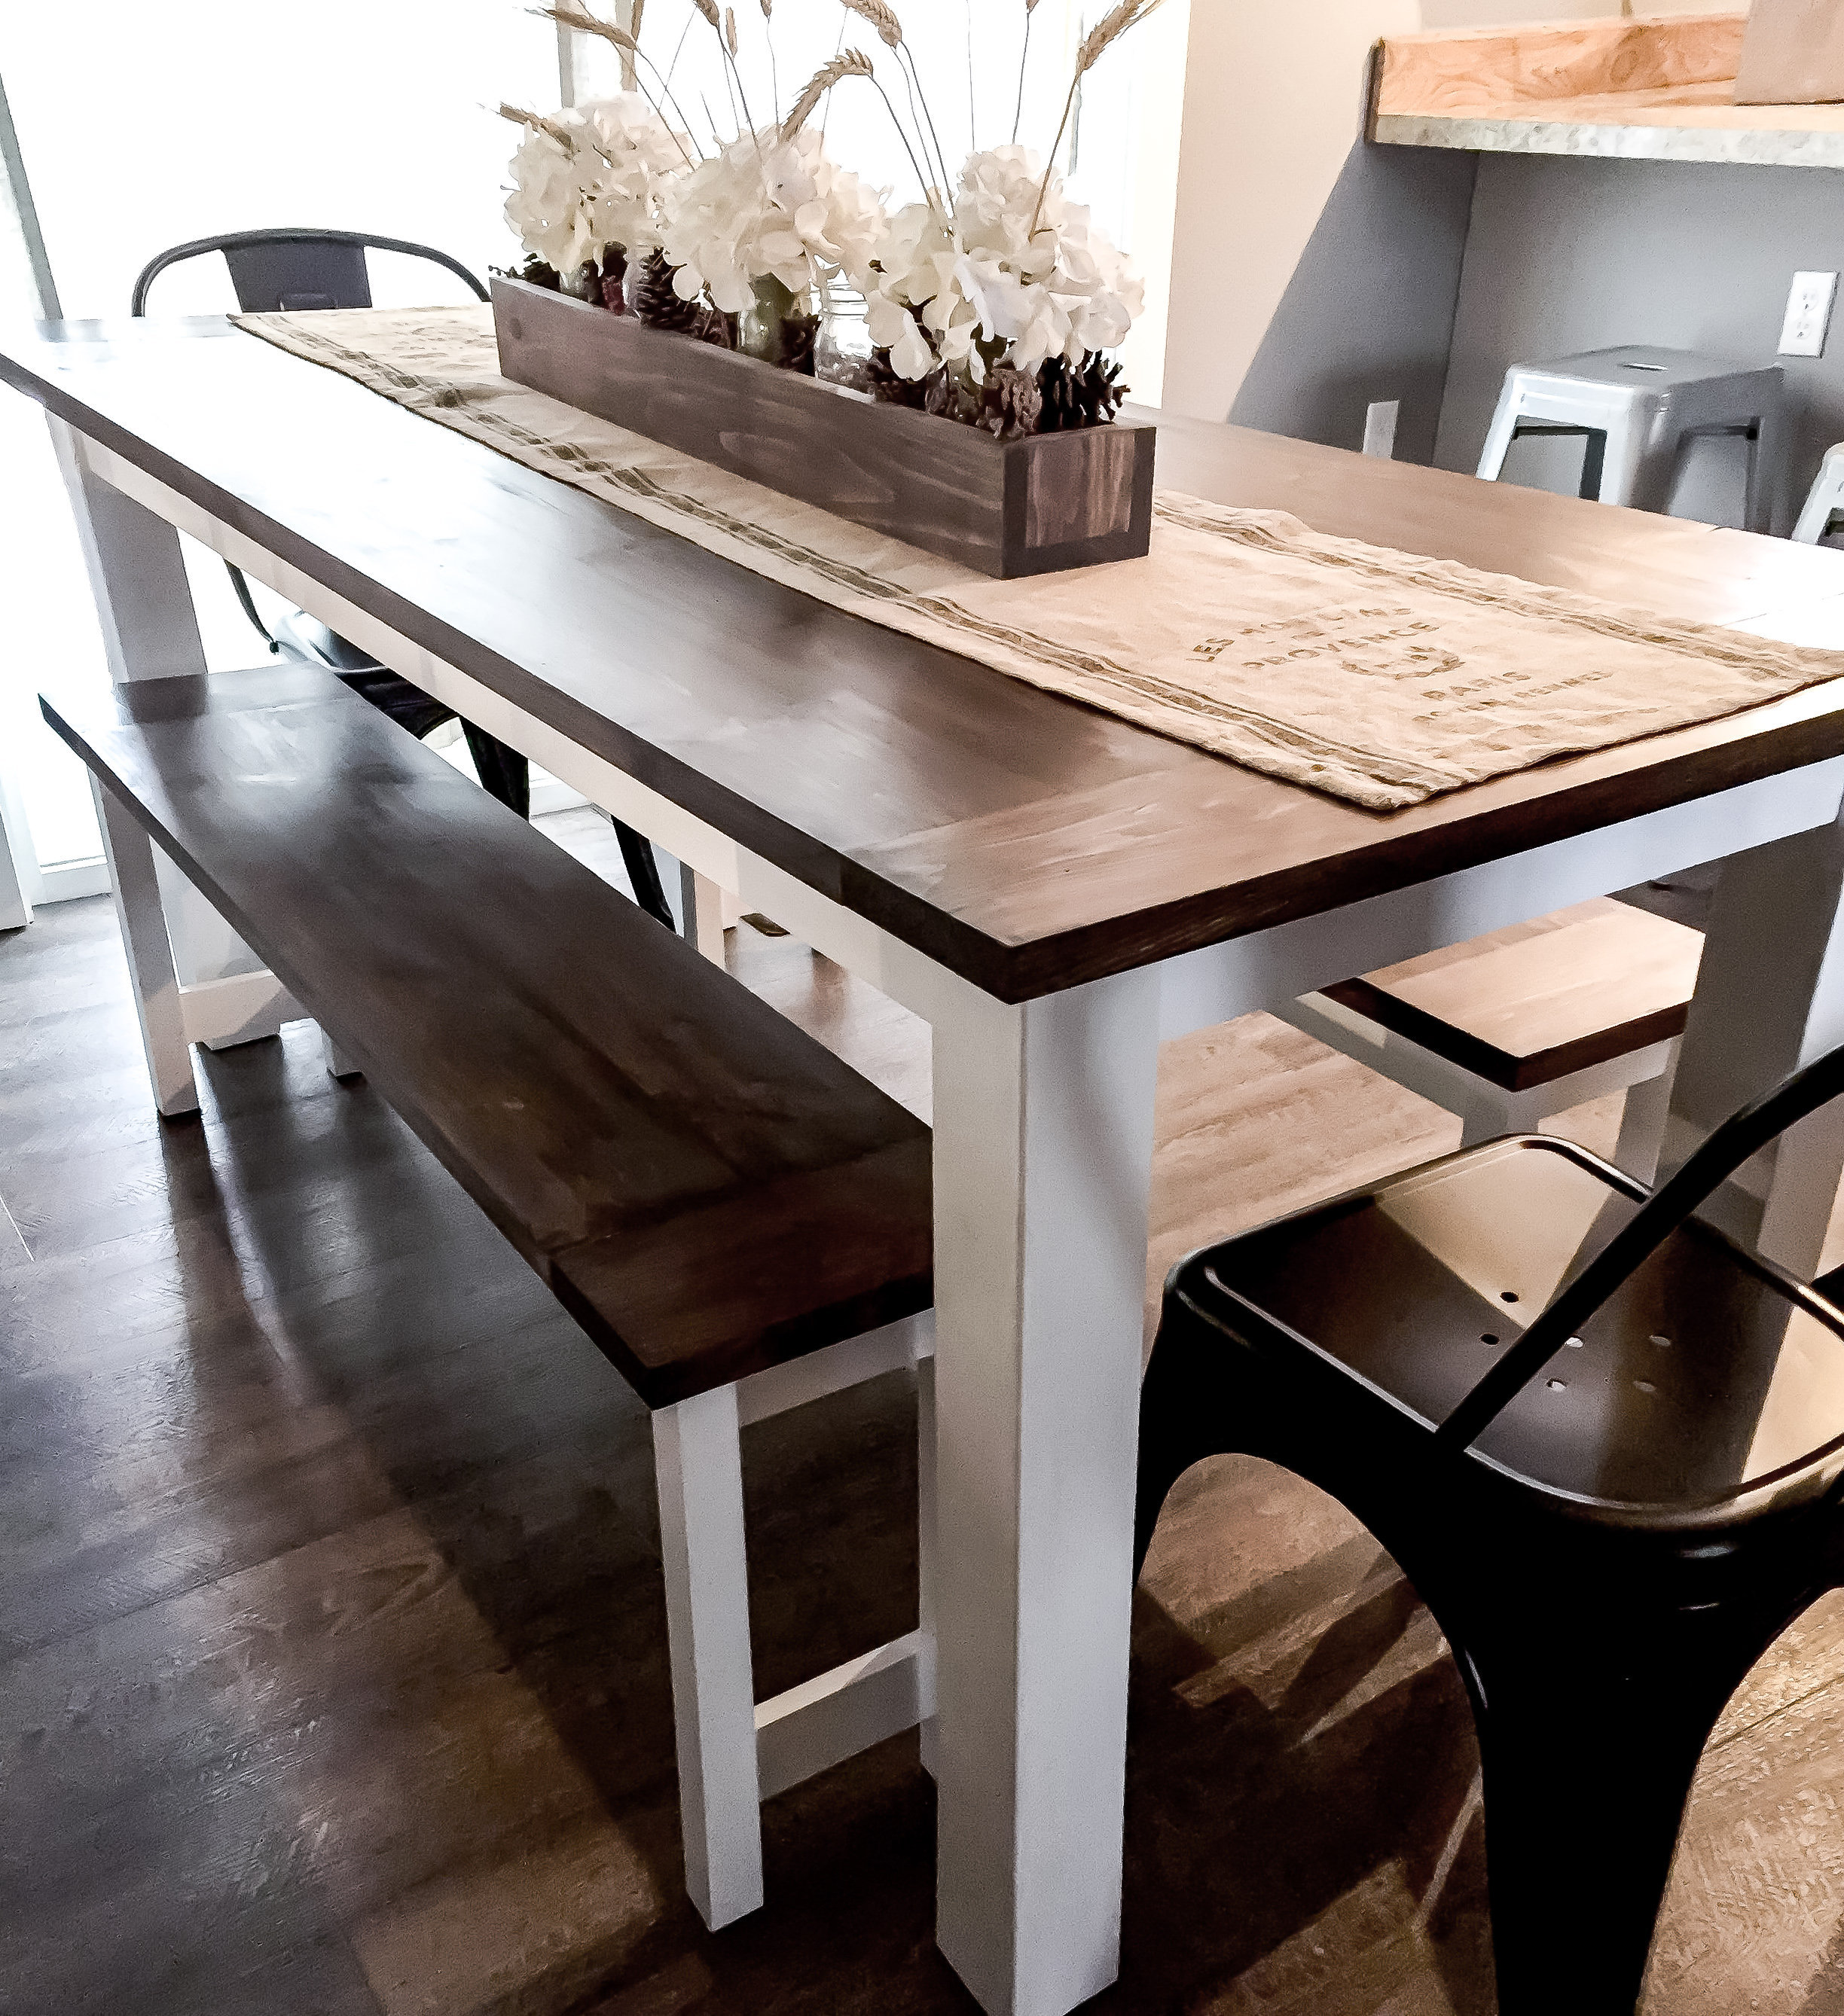 Diy Farmhouse Table Plans With Benches, Dining Room Table Woodworking Plans